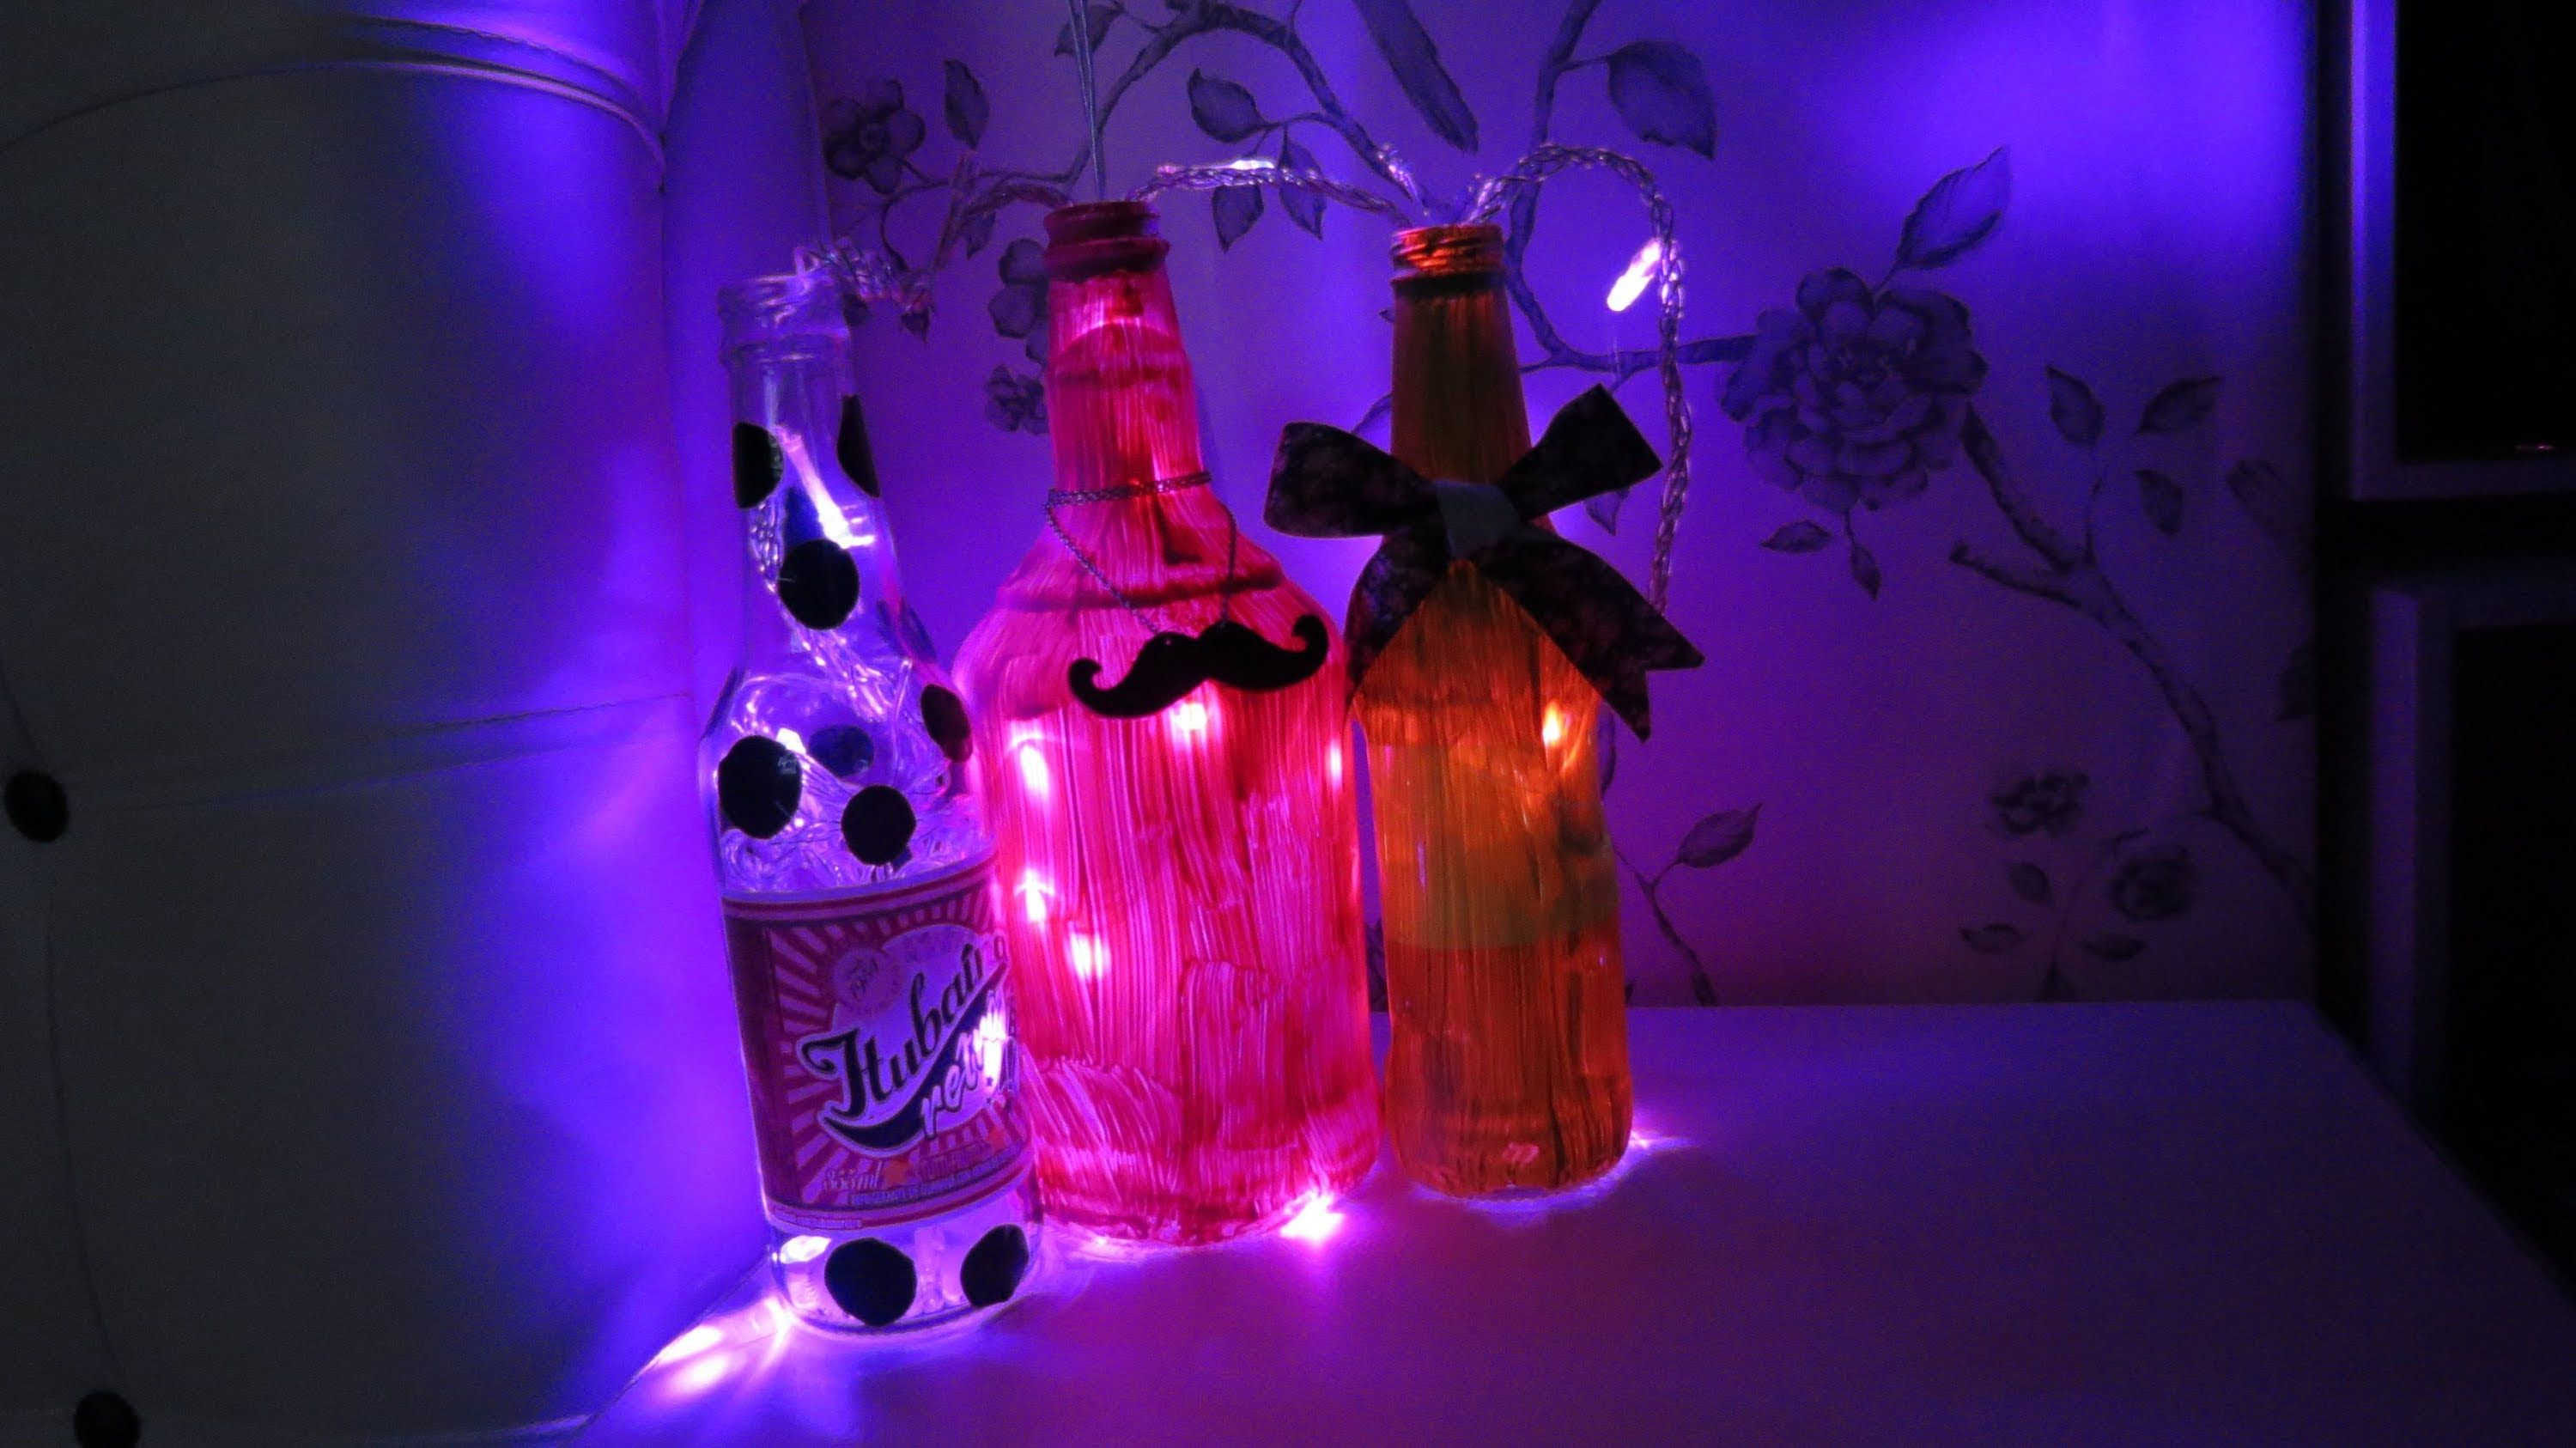 DIY: LUMINARIA DIVERTIDA (DECORANDO)